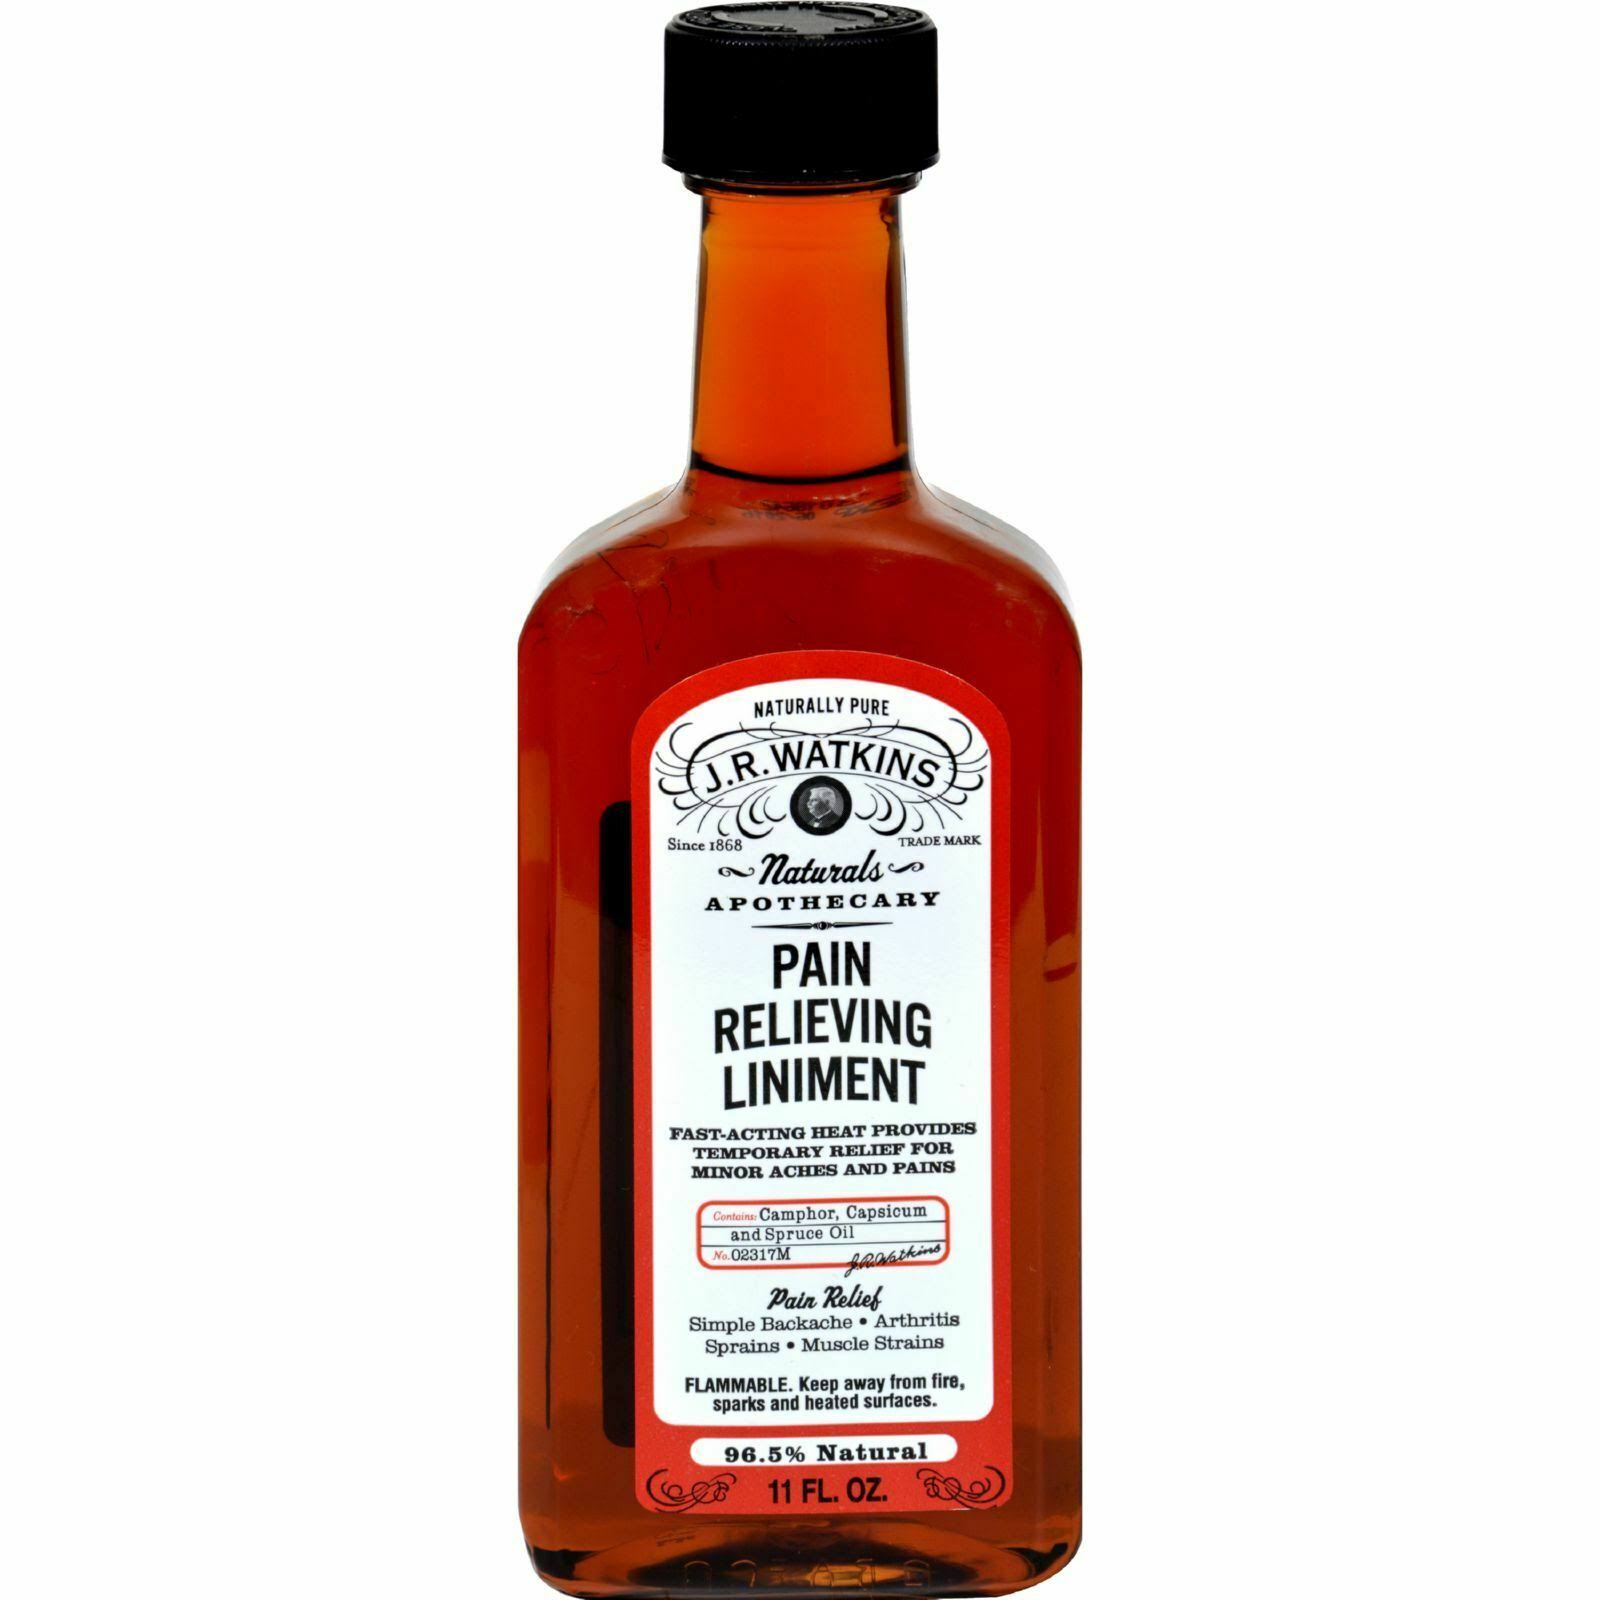 J. R. Watkins The Original Pain Relieving Liniment - 11oz